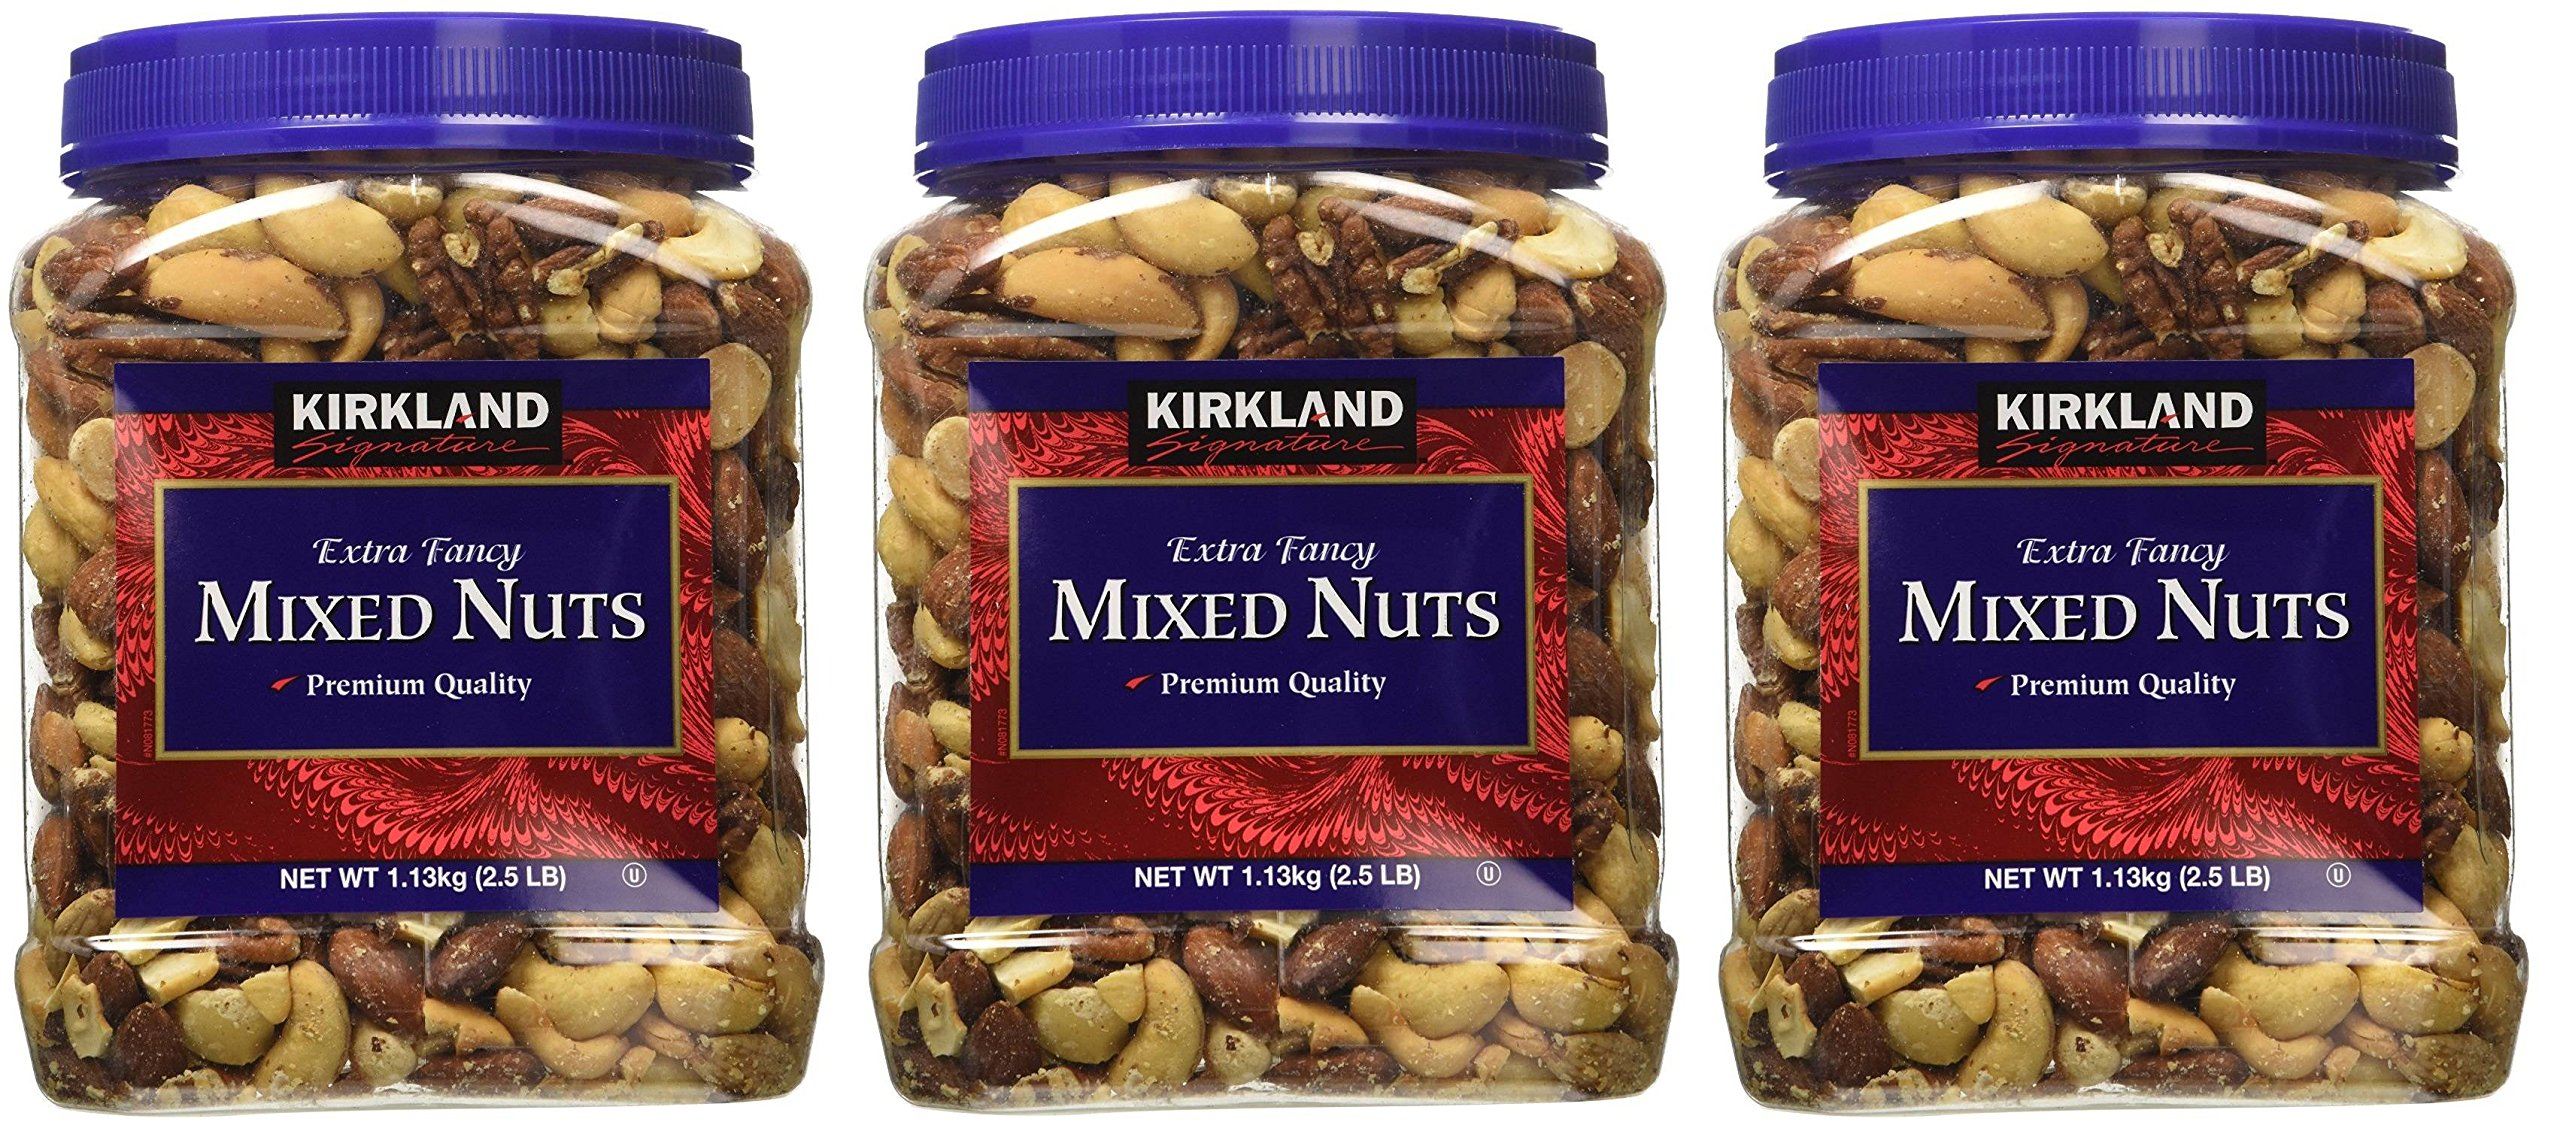 Kirkland Signature ffWYvN Fancy Mixed Nuts, 40 Ounce (3pack)